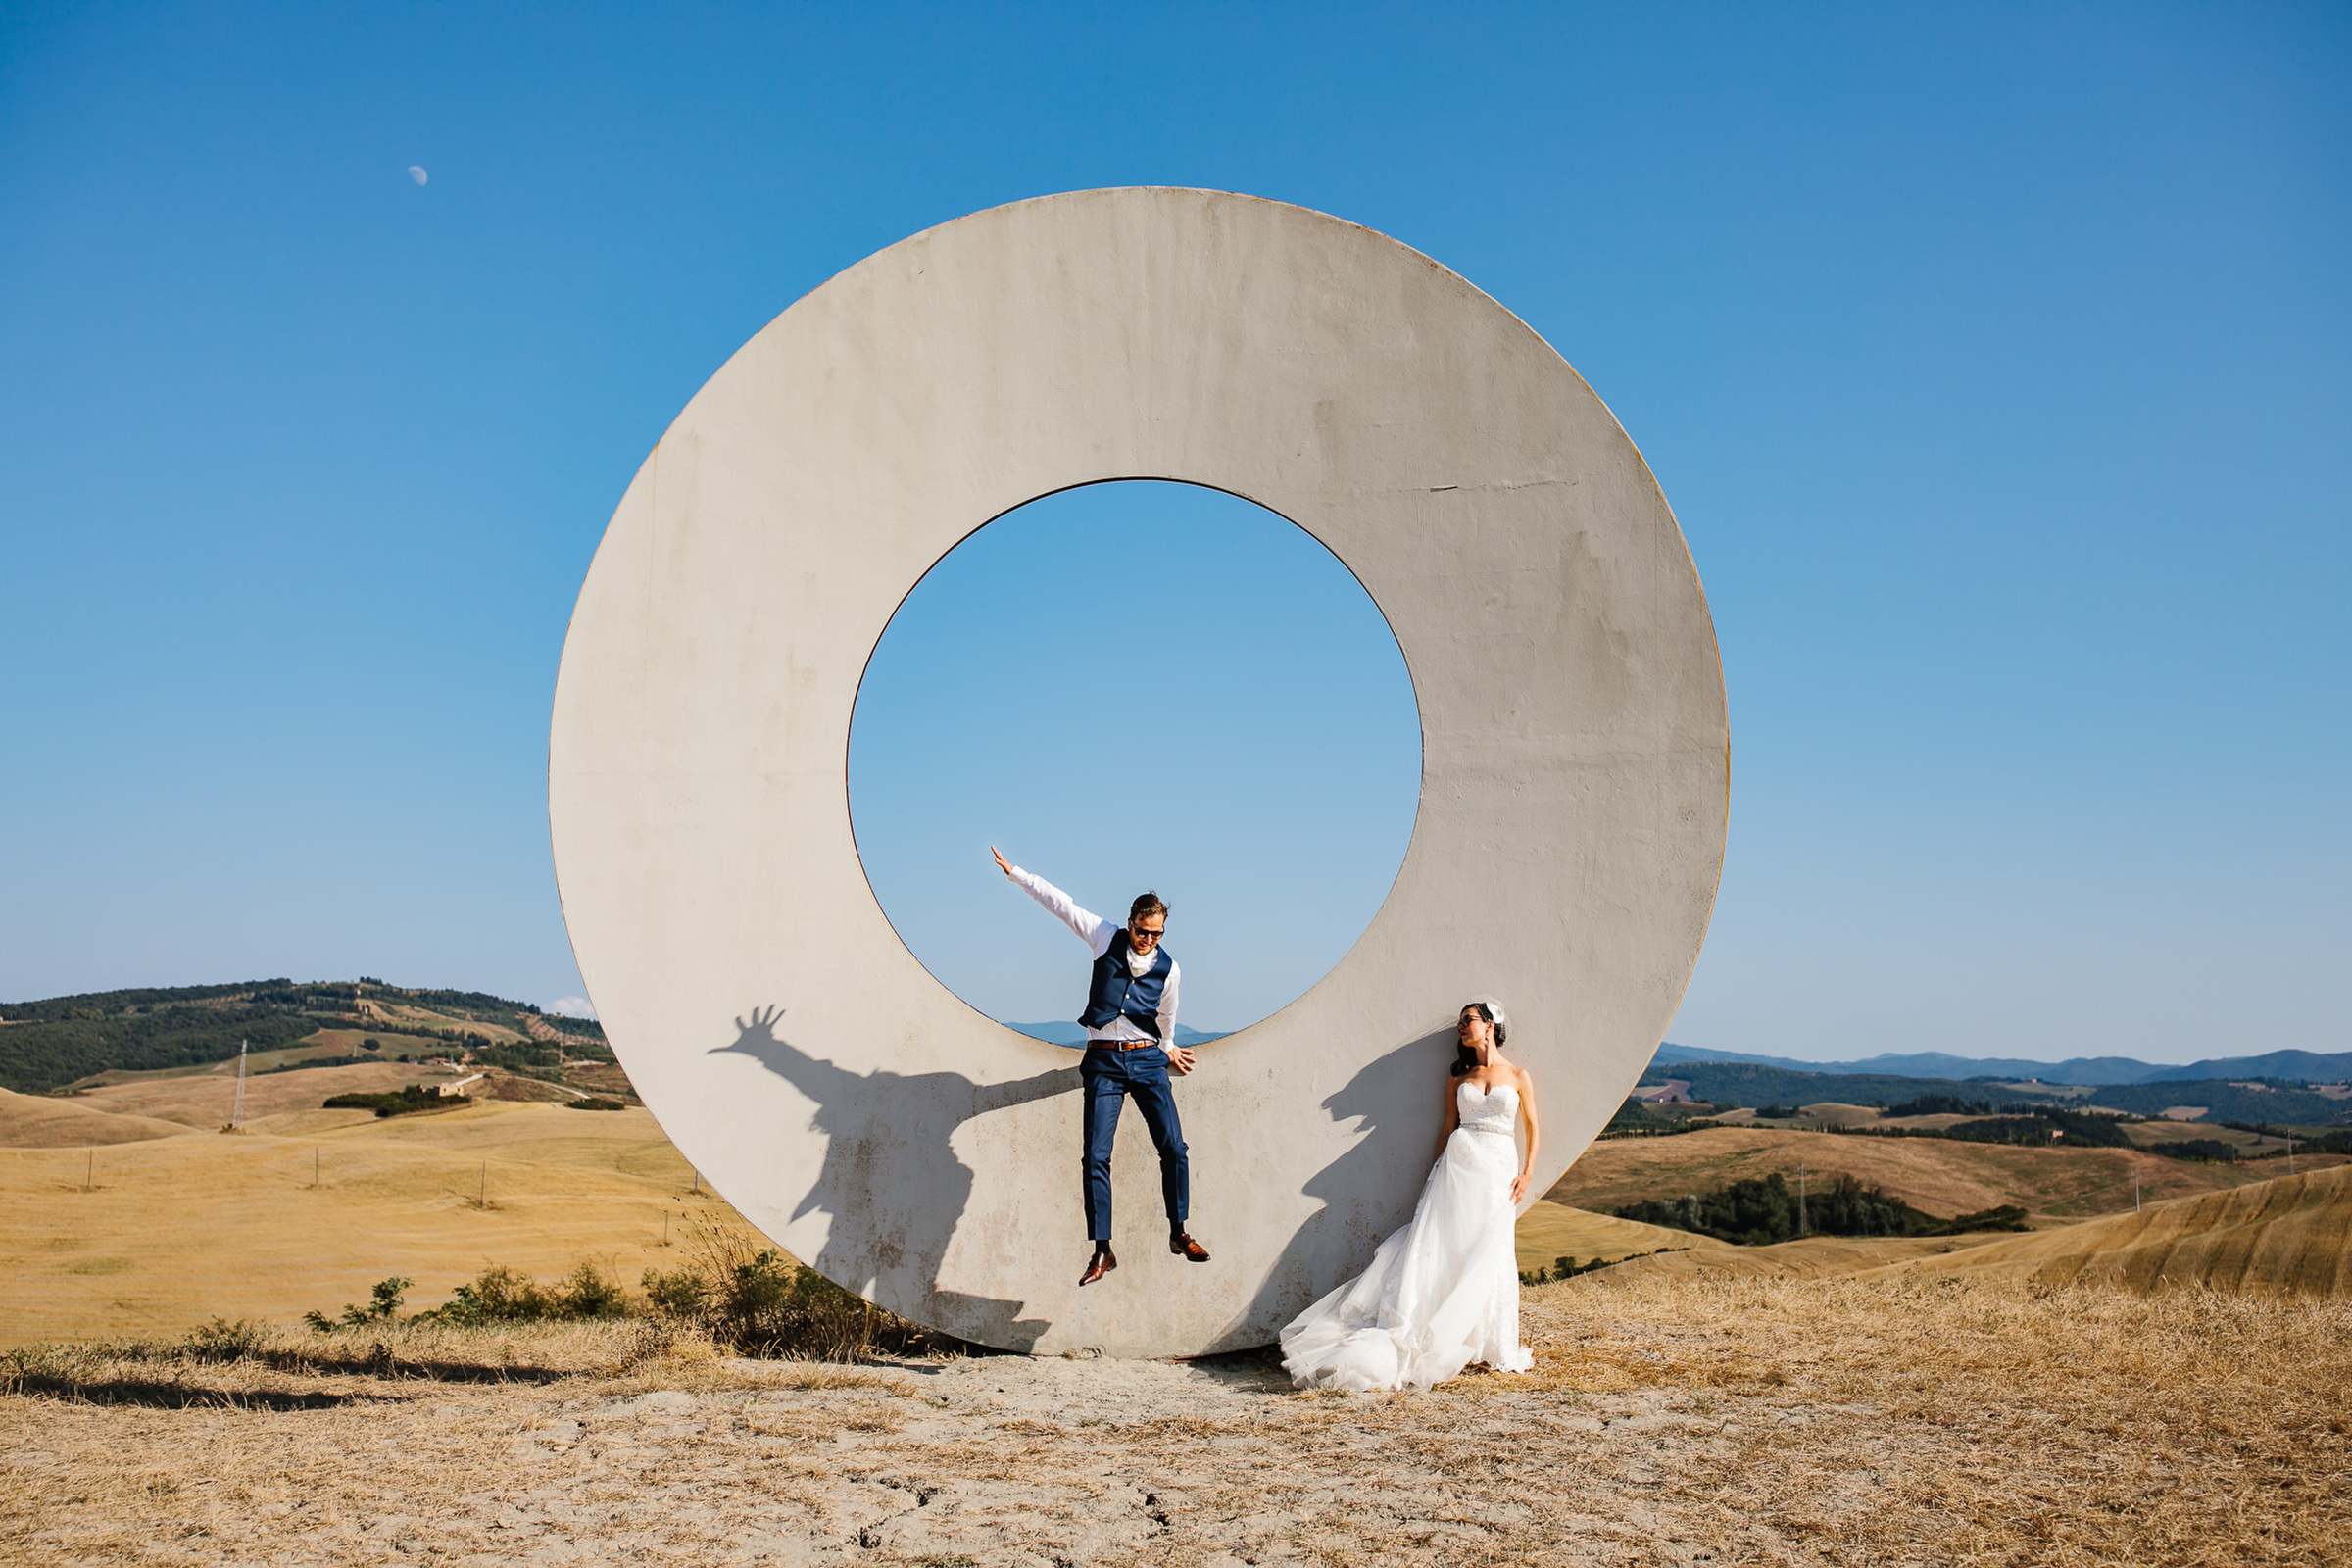 Bride and groom play on outdoor sculpture - photo by Julian Kanz Photography